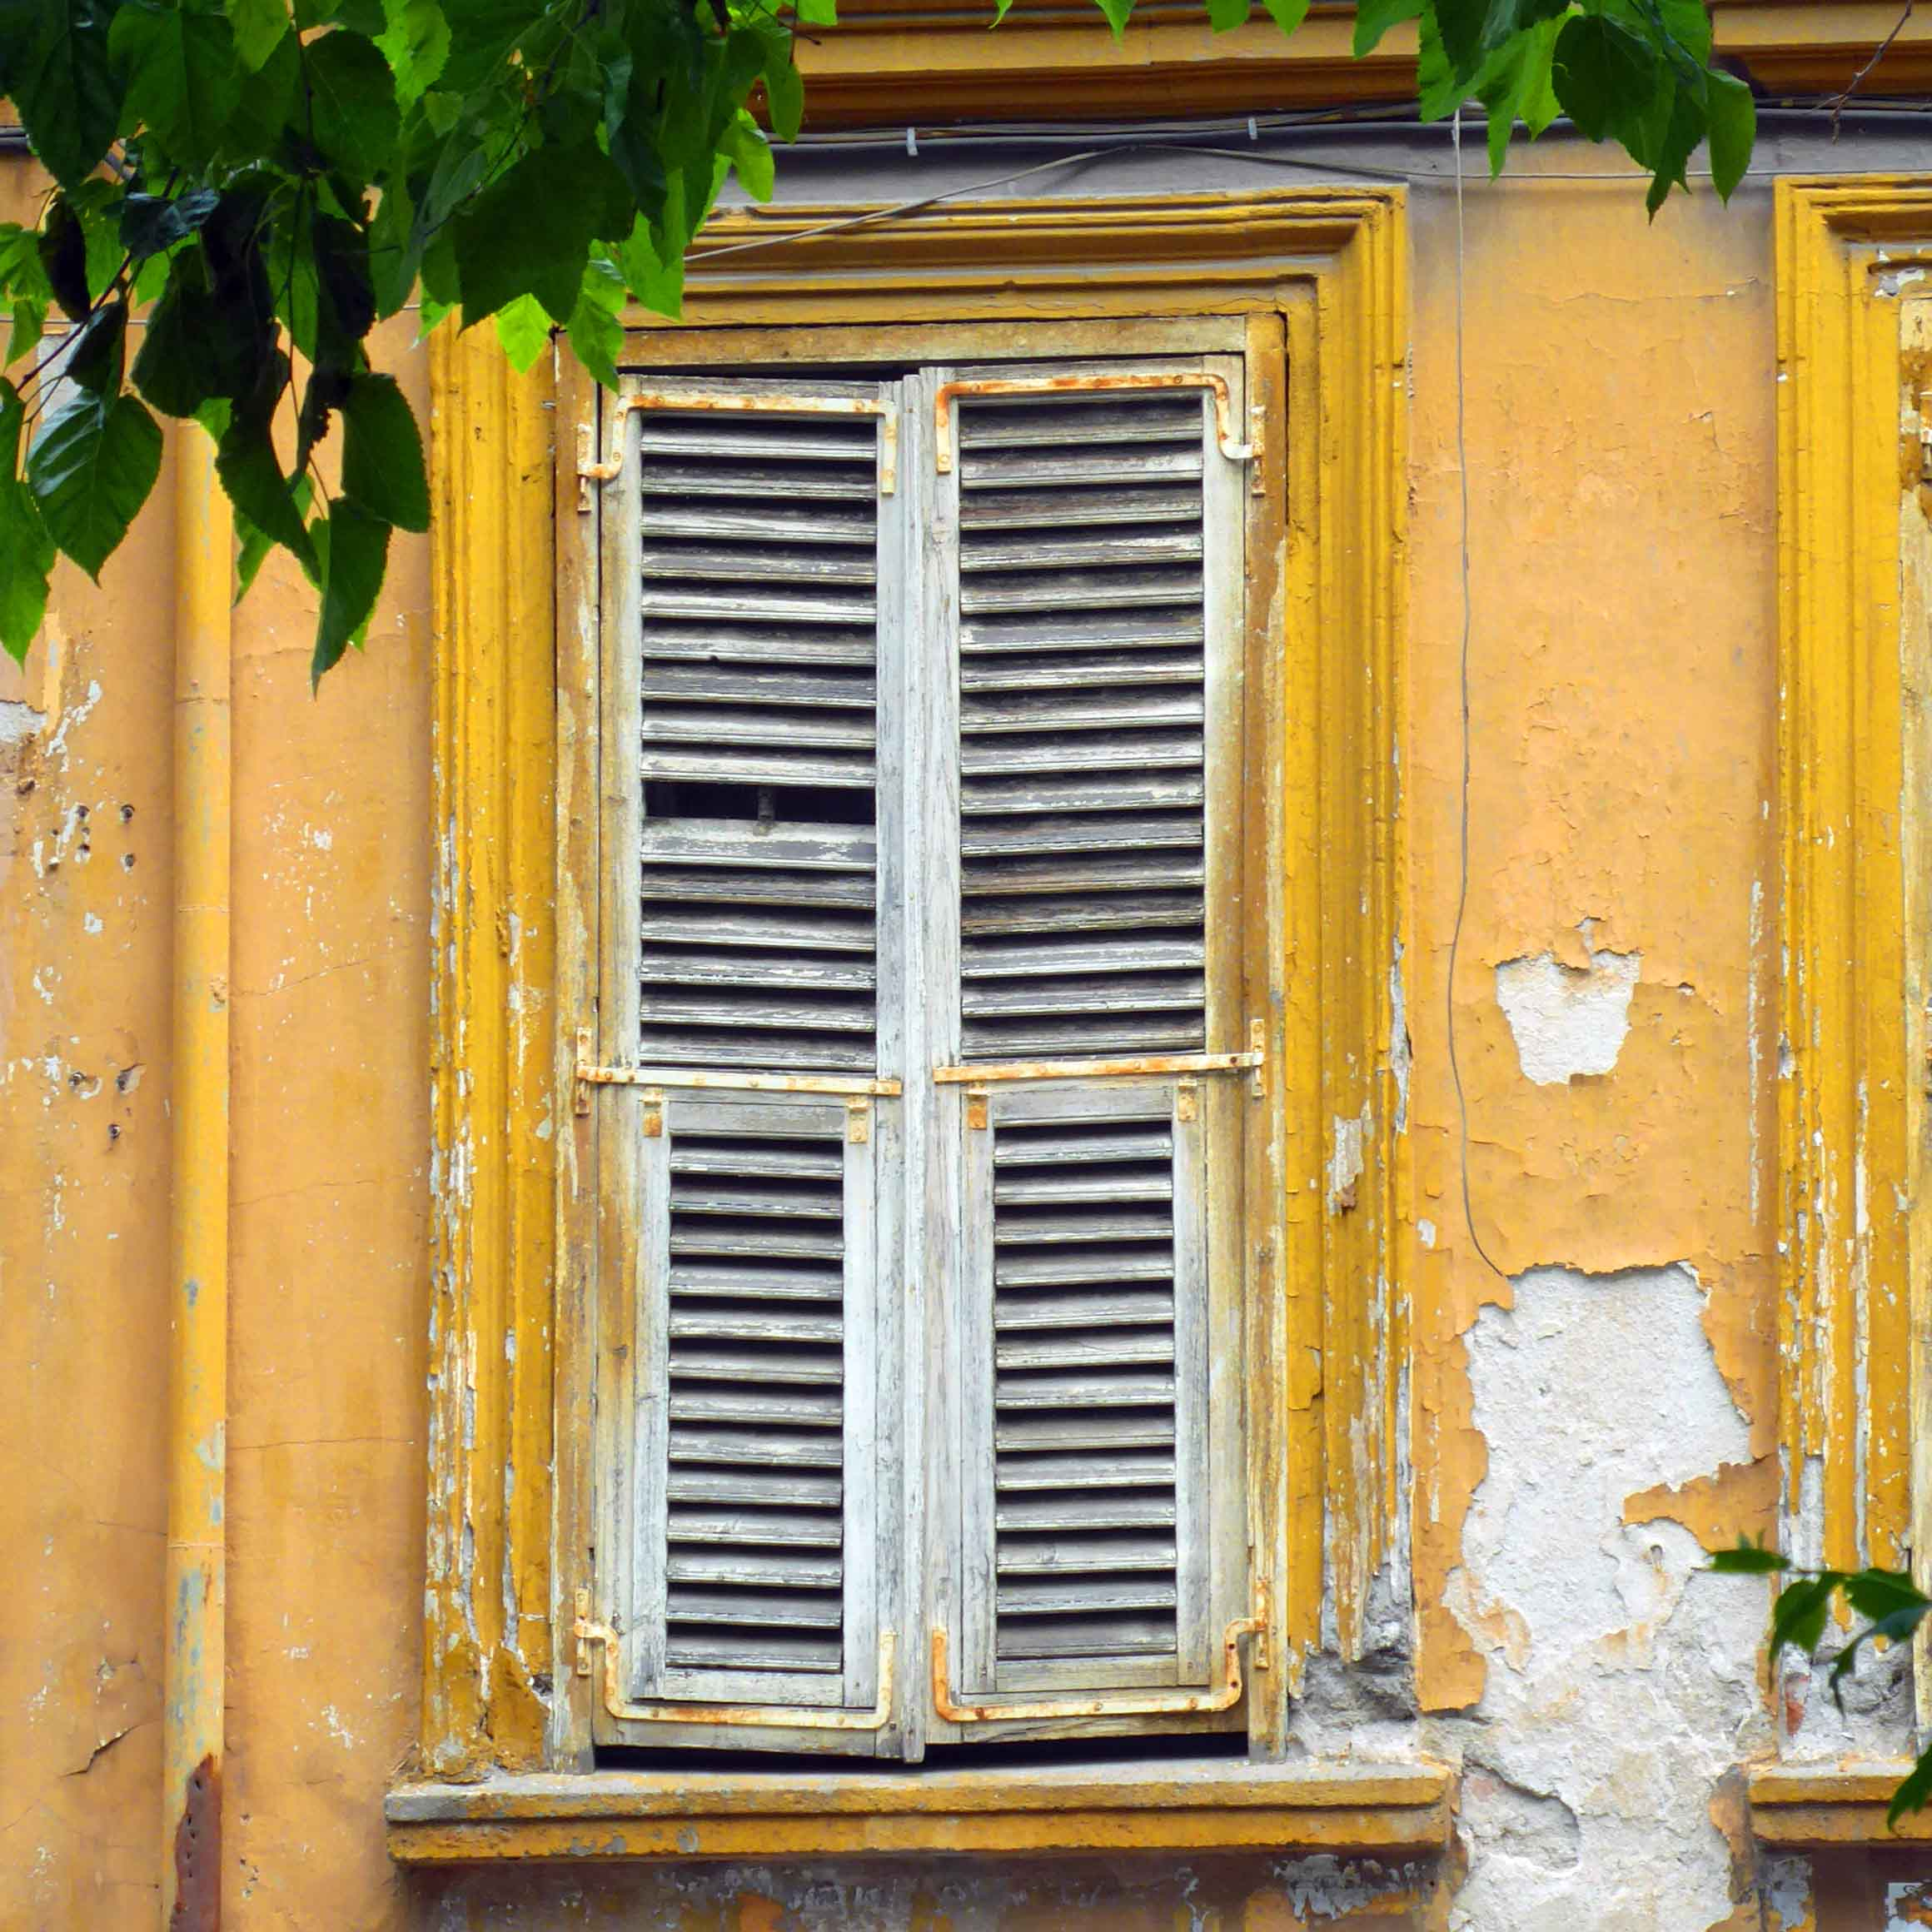 White window shutters and yellow peeling paint on walls